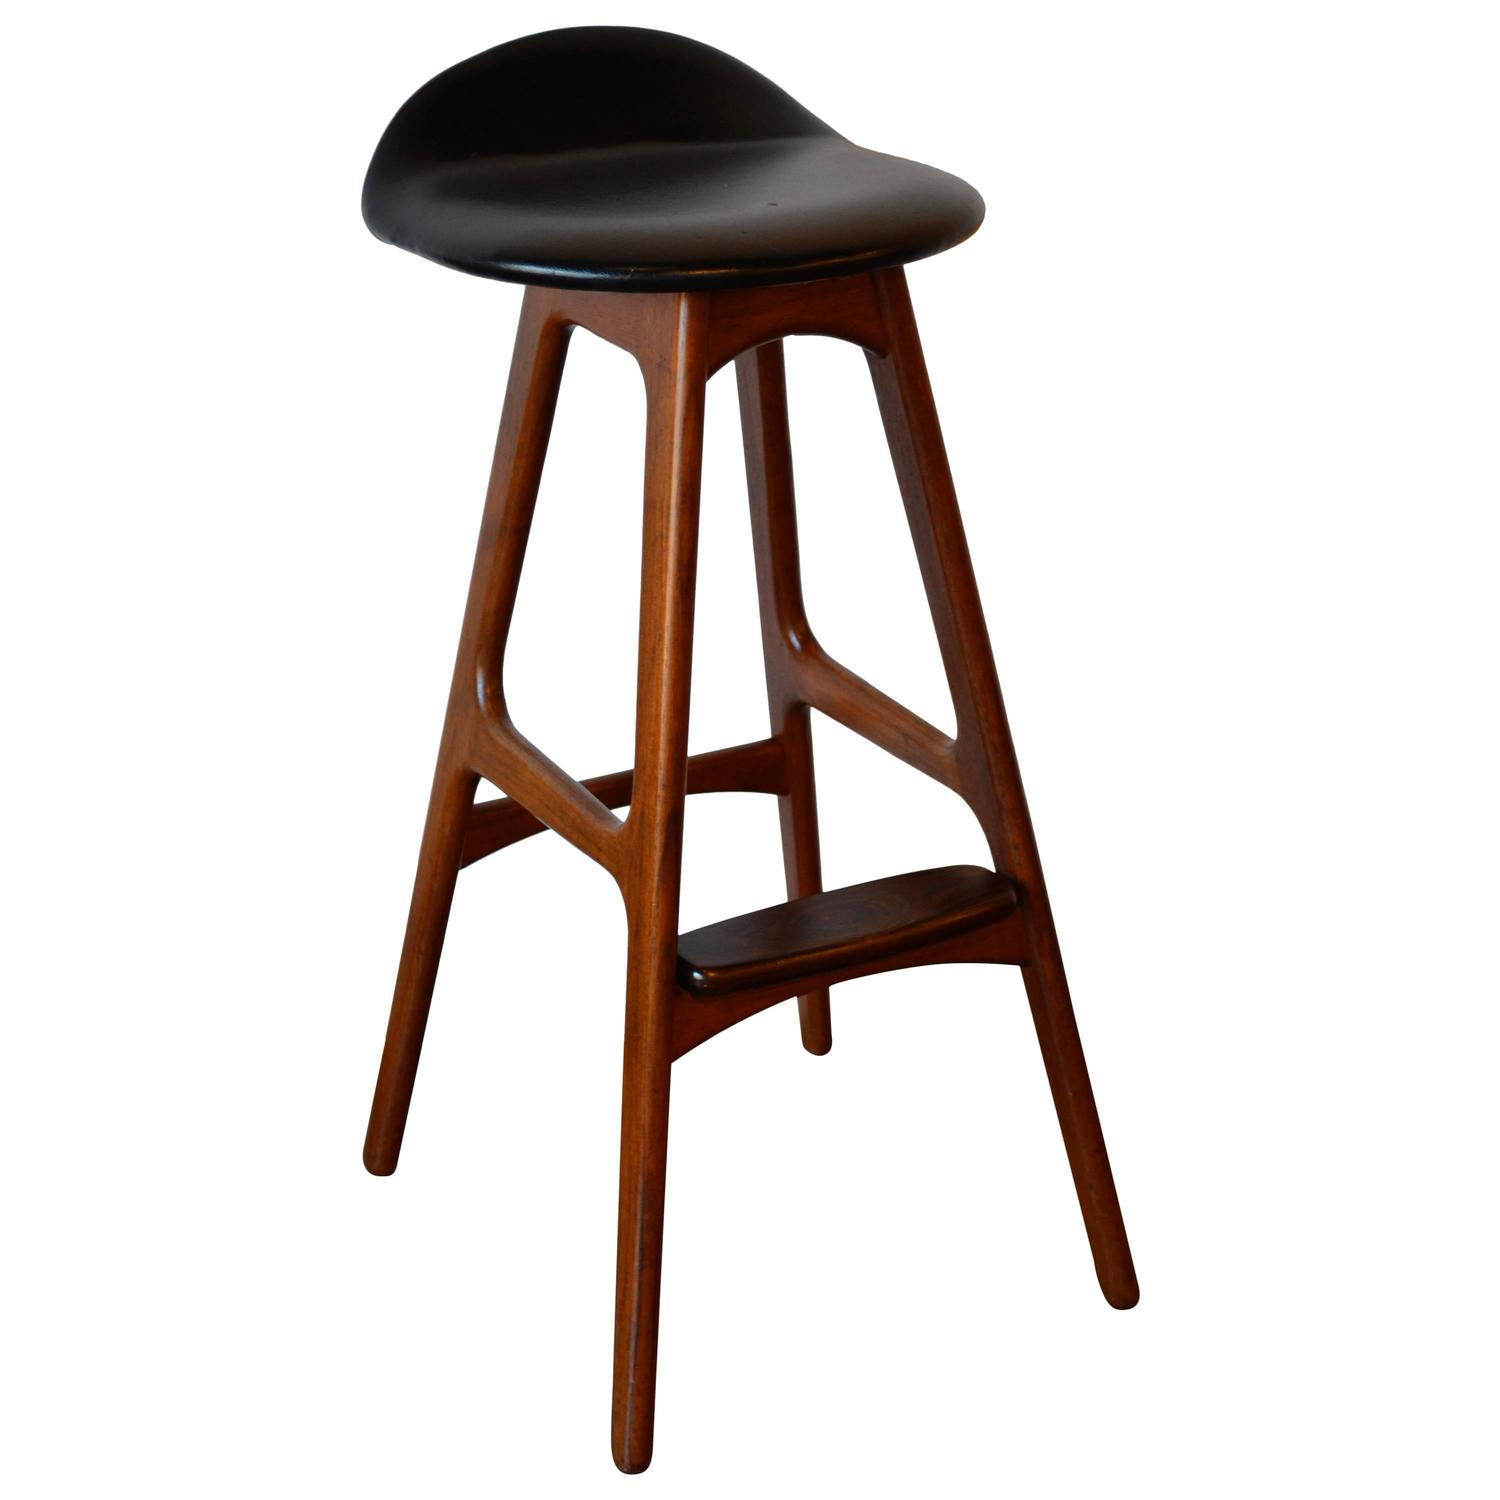 Erik buch teak and rosewood bar stool denmark circa 1970s for sale at 1stdibs - Erik buch bar stool ...